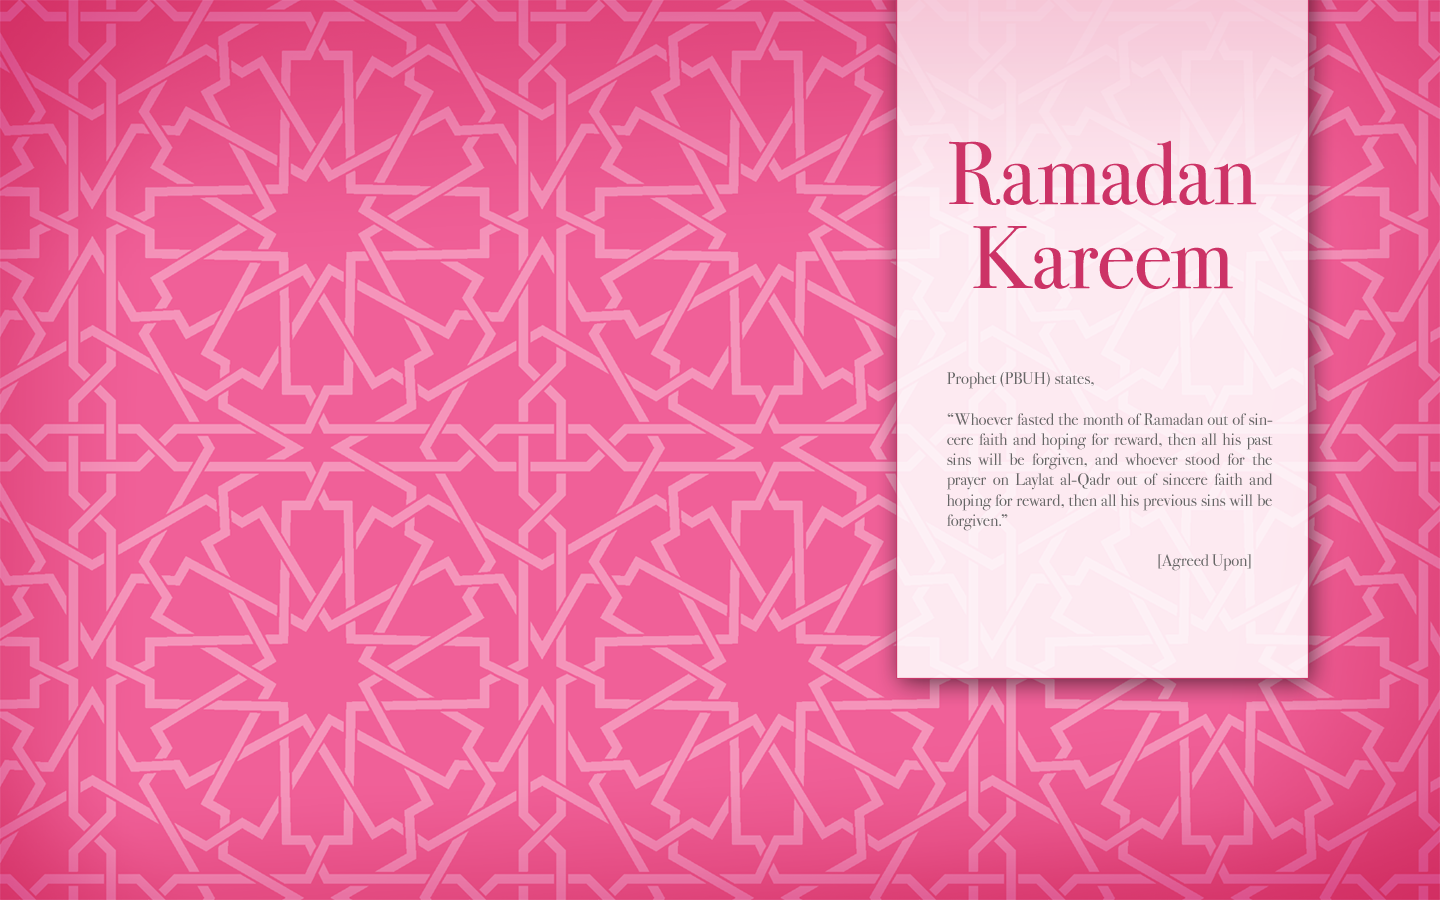 WallpapersKu Islamic Wallpapers  Ramadan Kareem